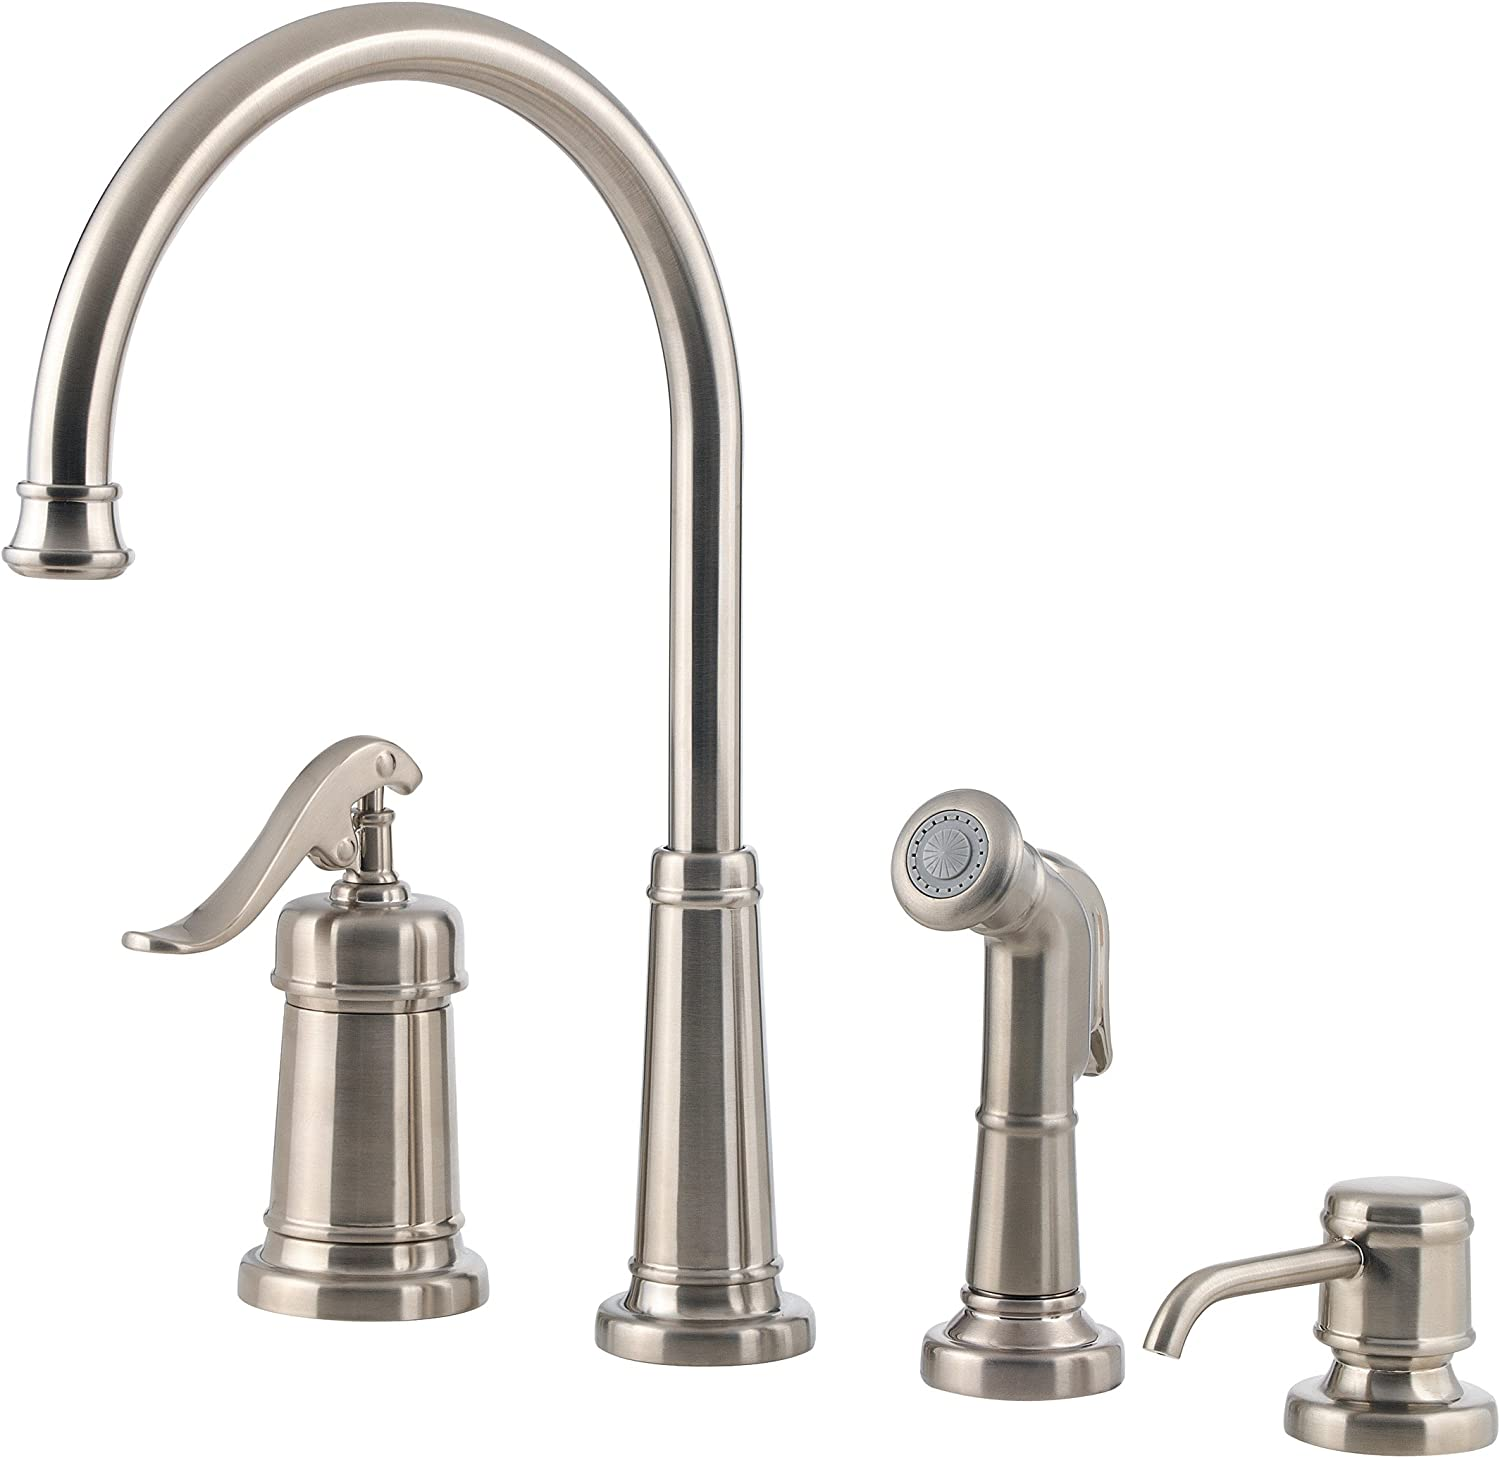 Pfister LG264YPK Ashfield 1-Handle Kitchen Faucet with Side Spray Soap Dispenser, Brushed Nickel, 1.8 gpm